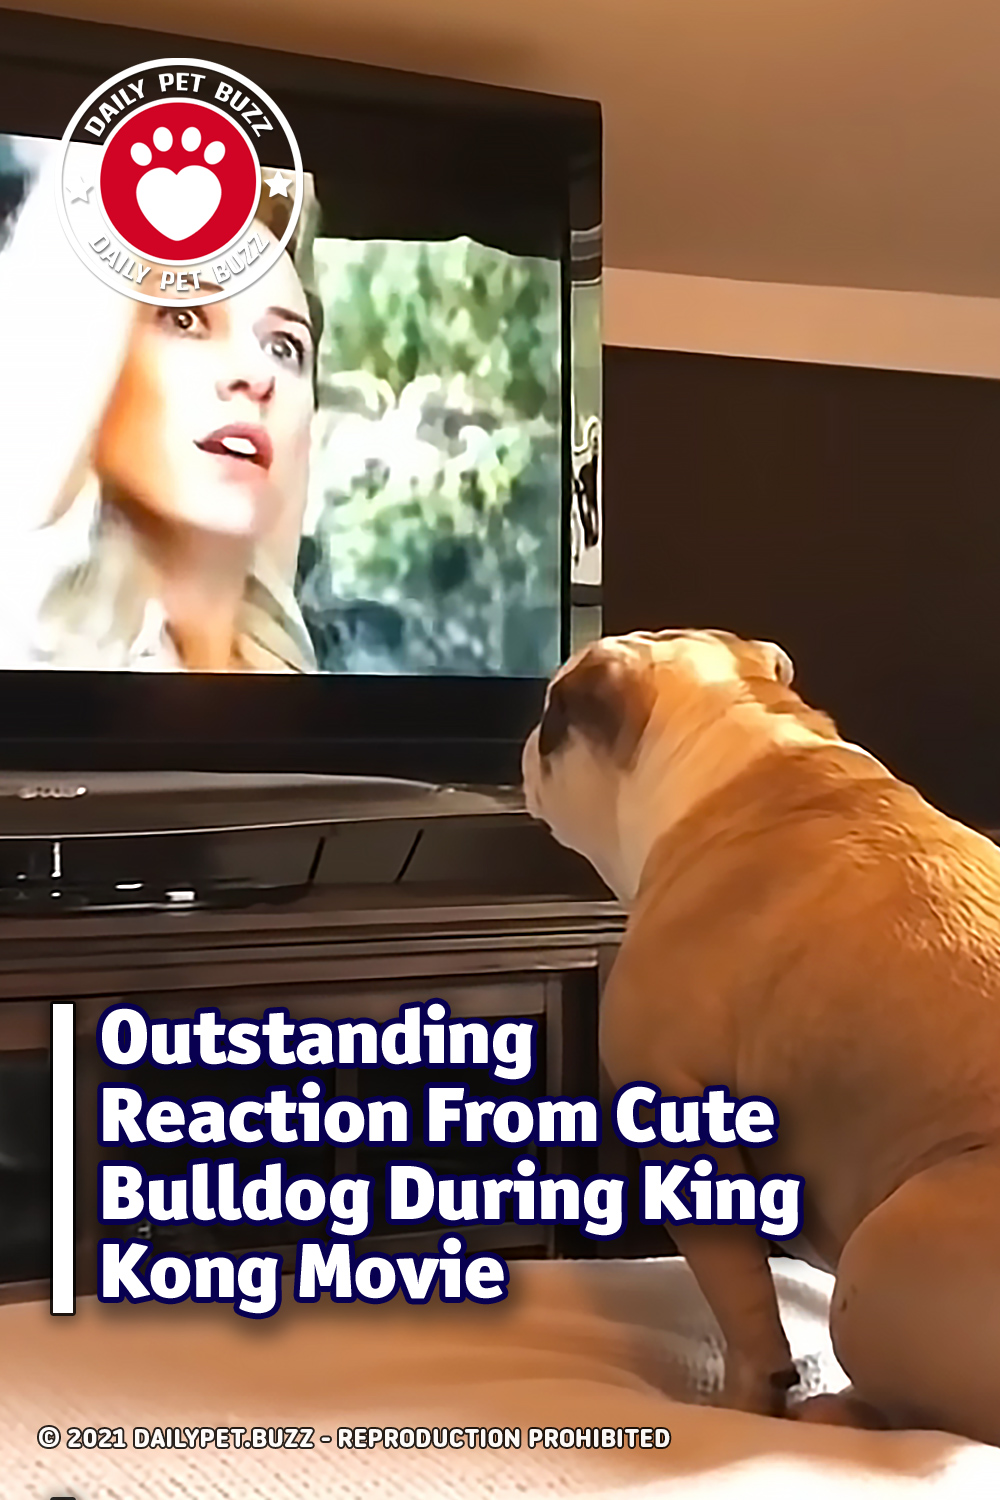 Outstanding Reaction From Cute Bulldog During King Kong Movie